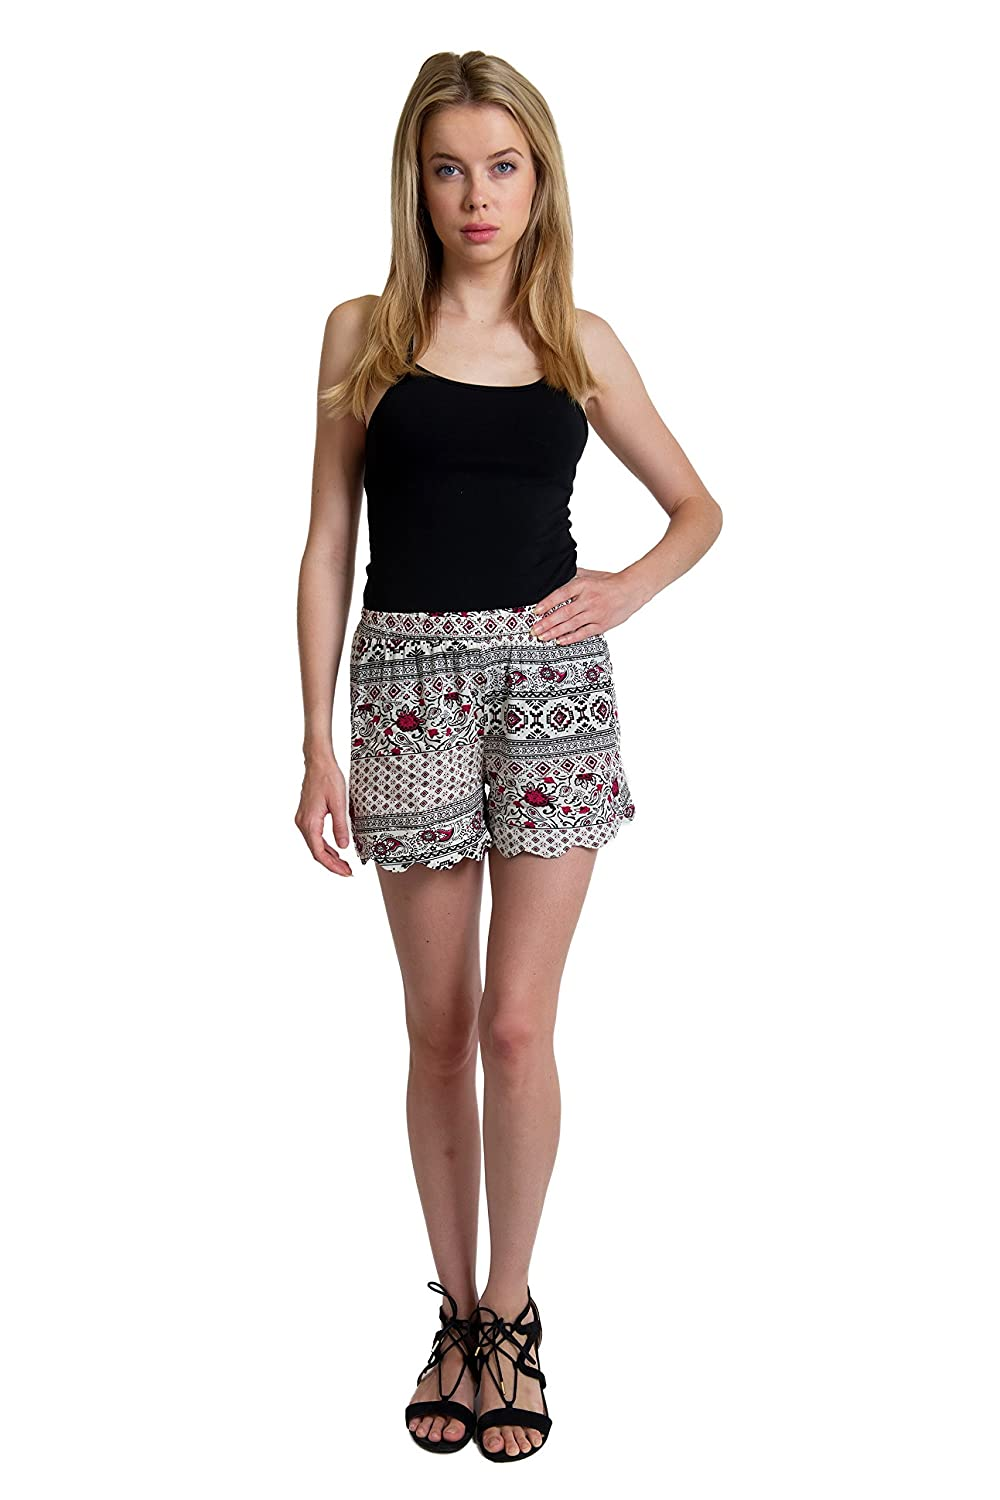 Girl Evolution Soft Shorts,Medium,Multi, 2993-sm